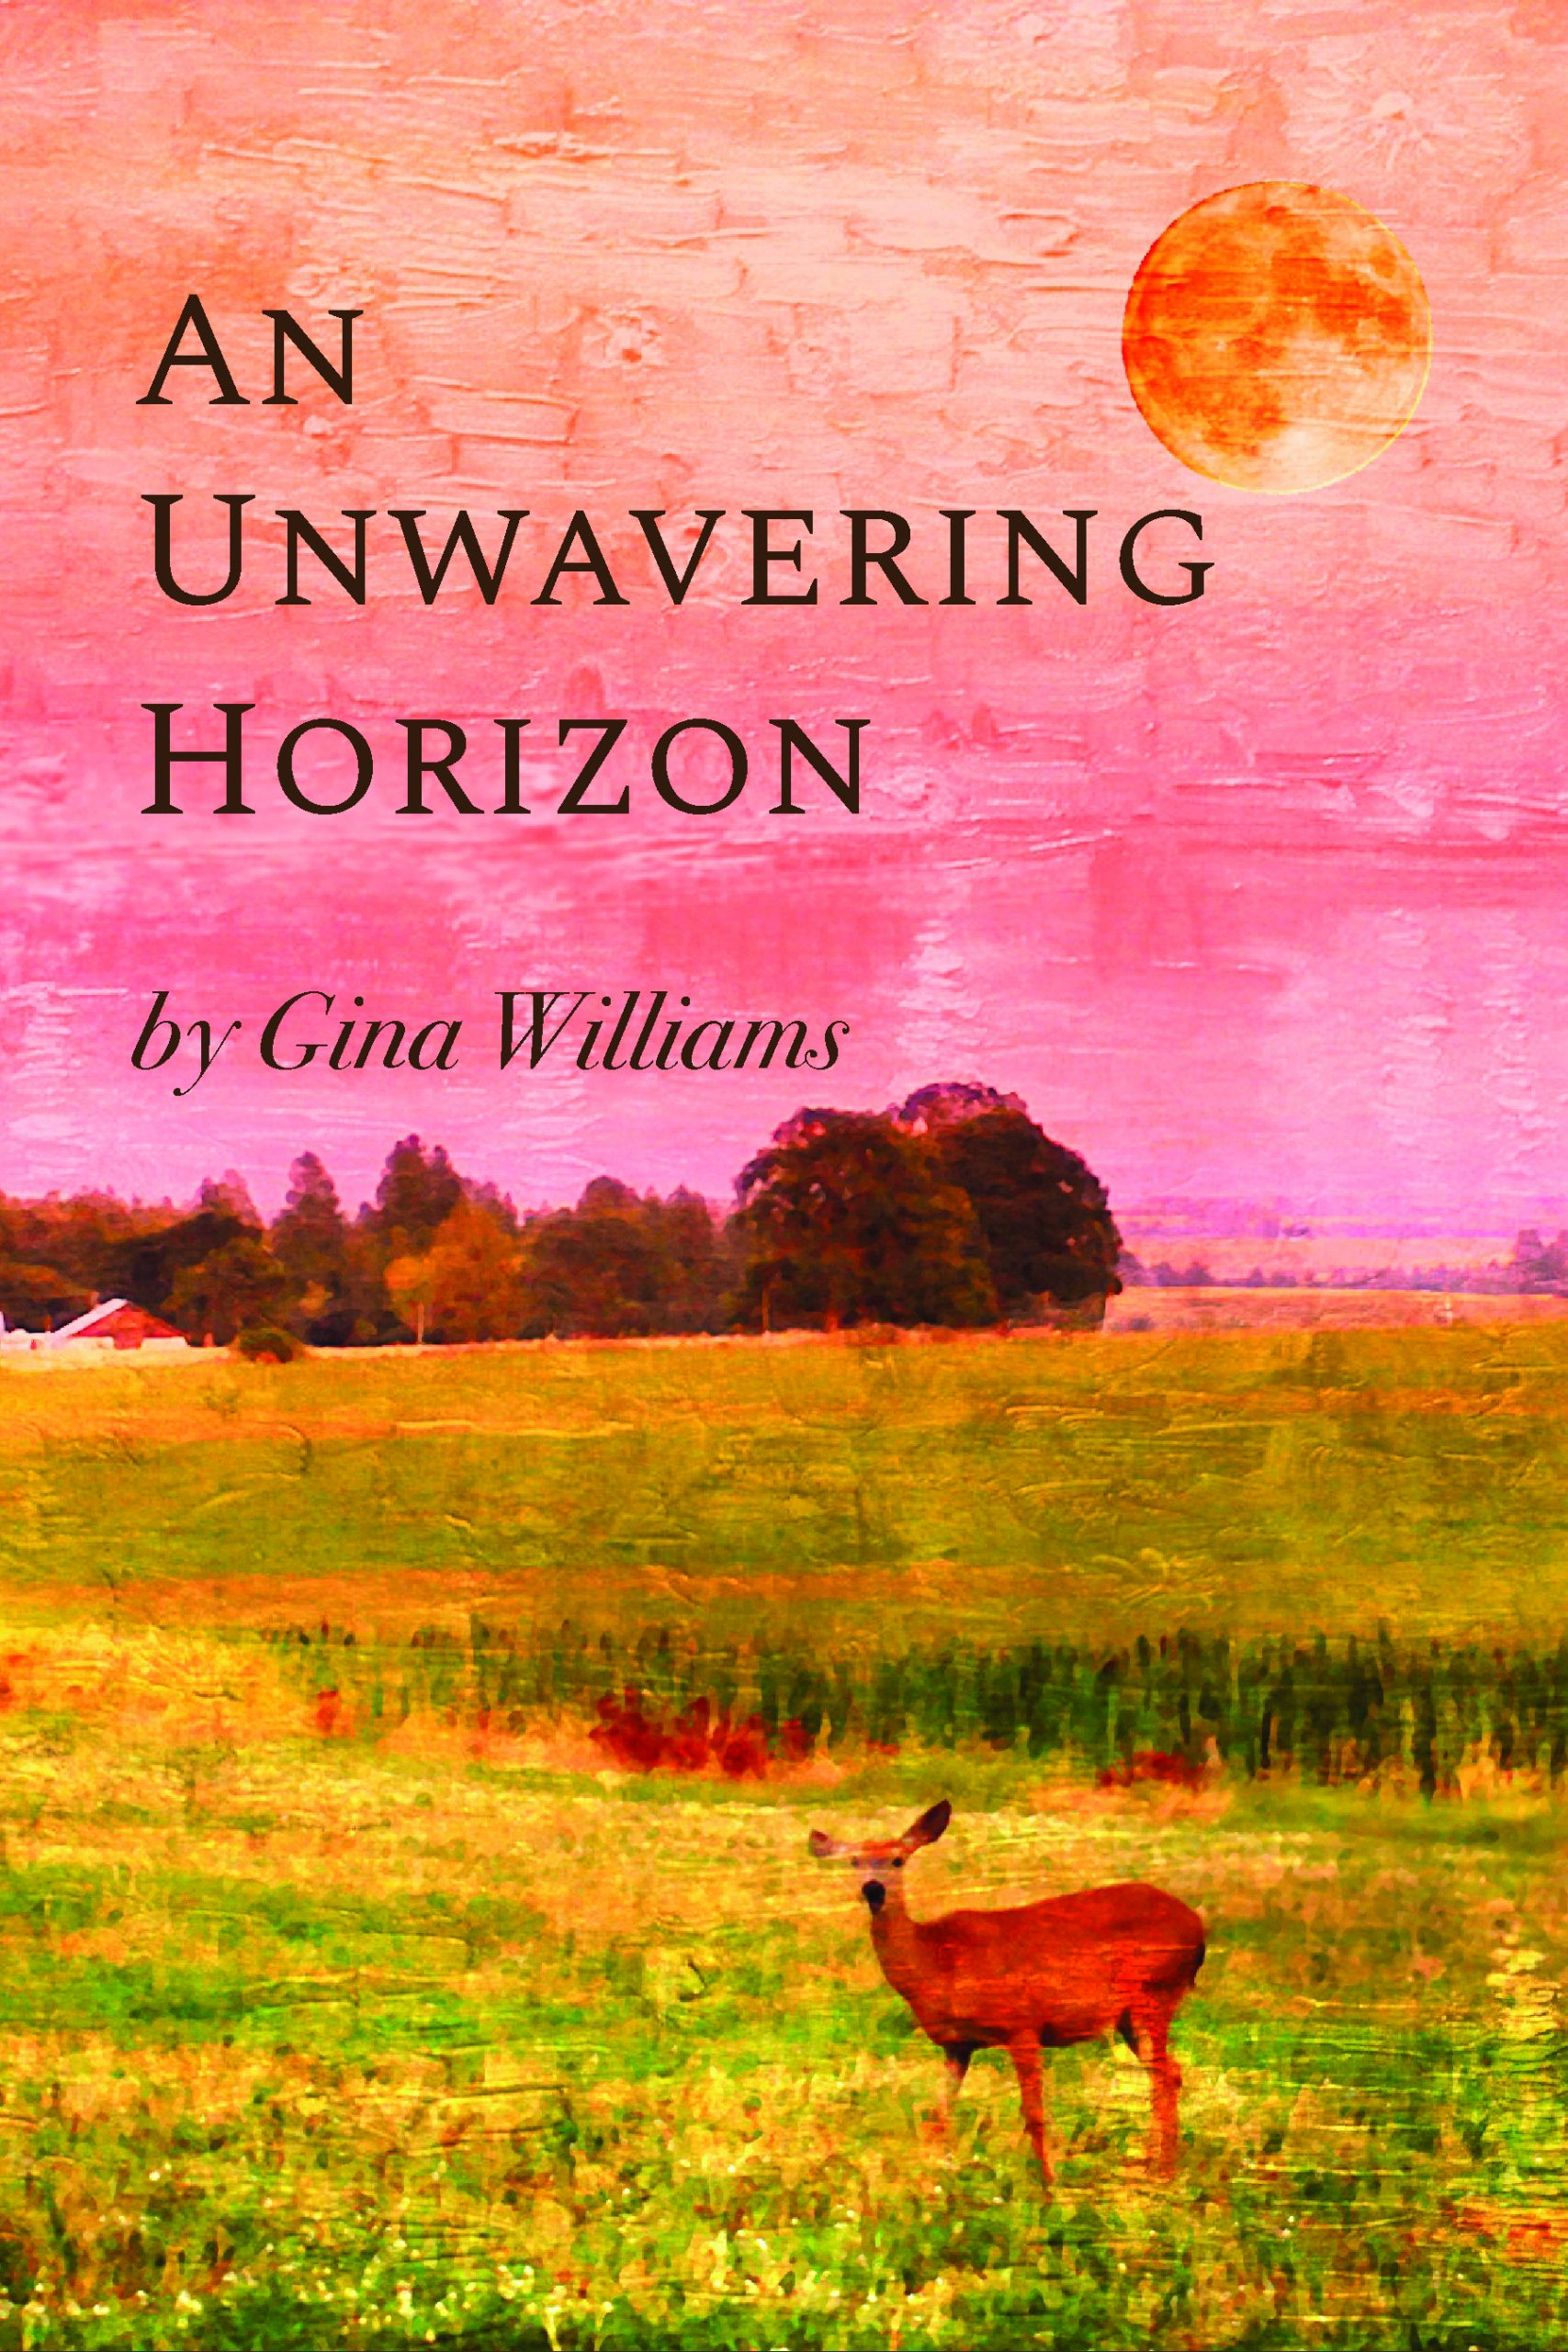 An Unwavering Horizon